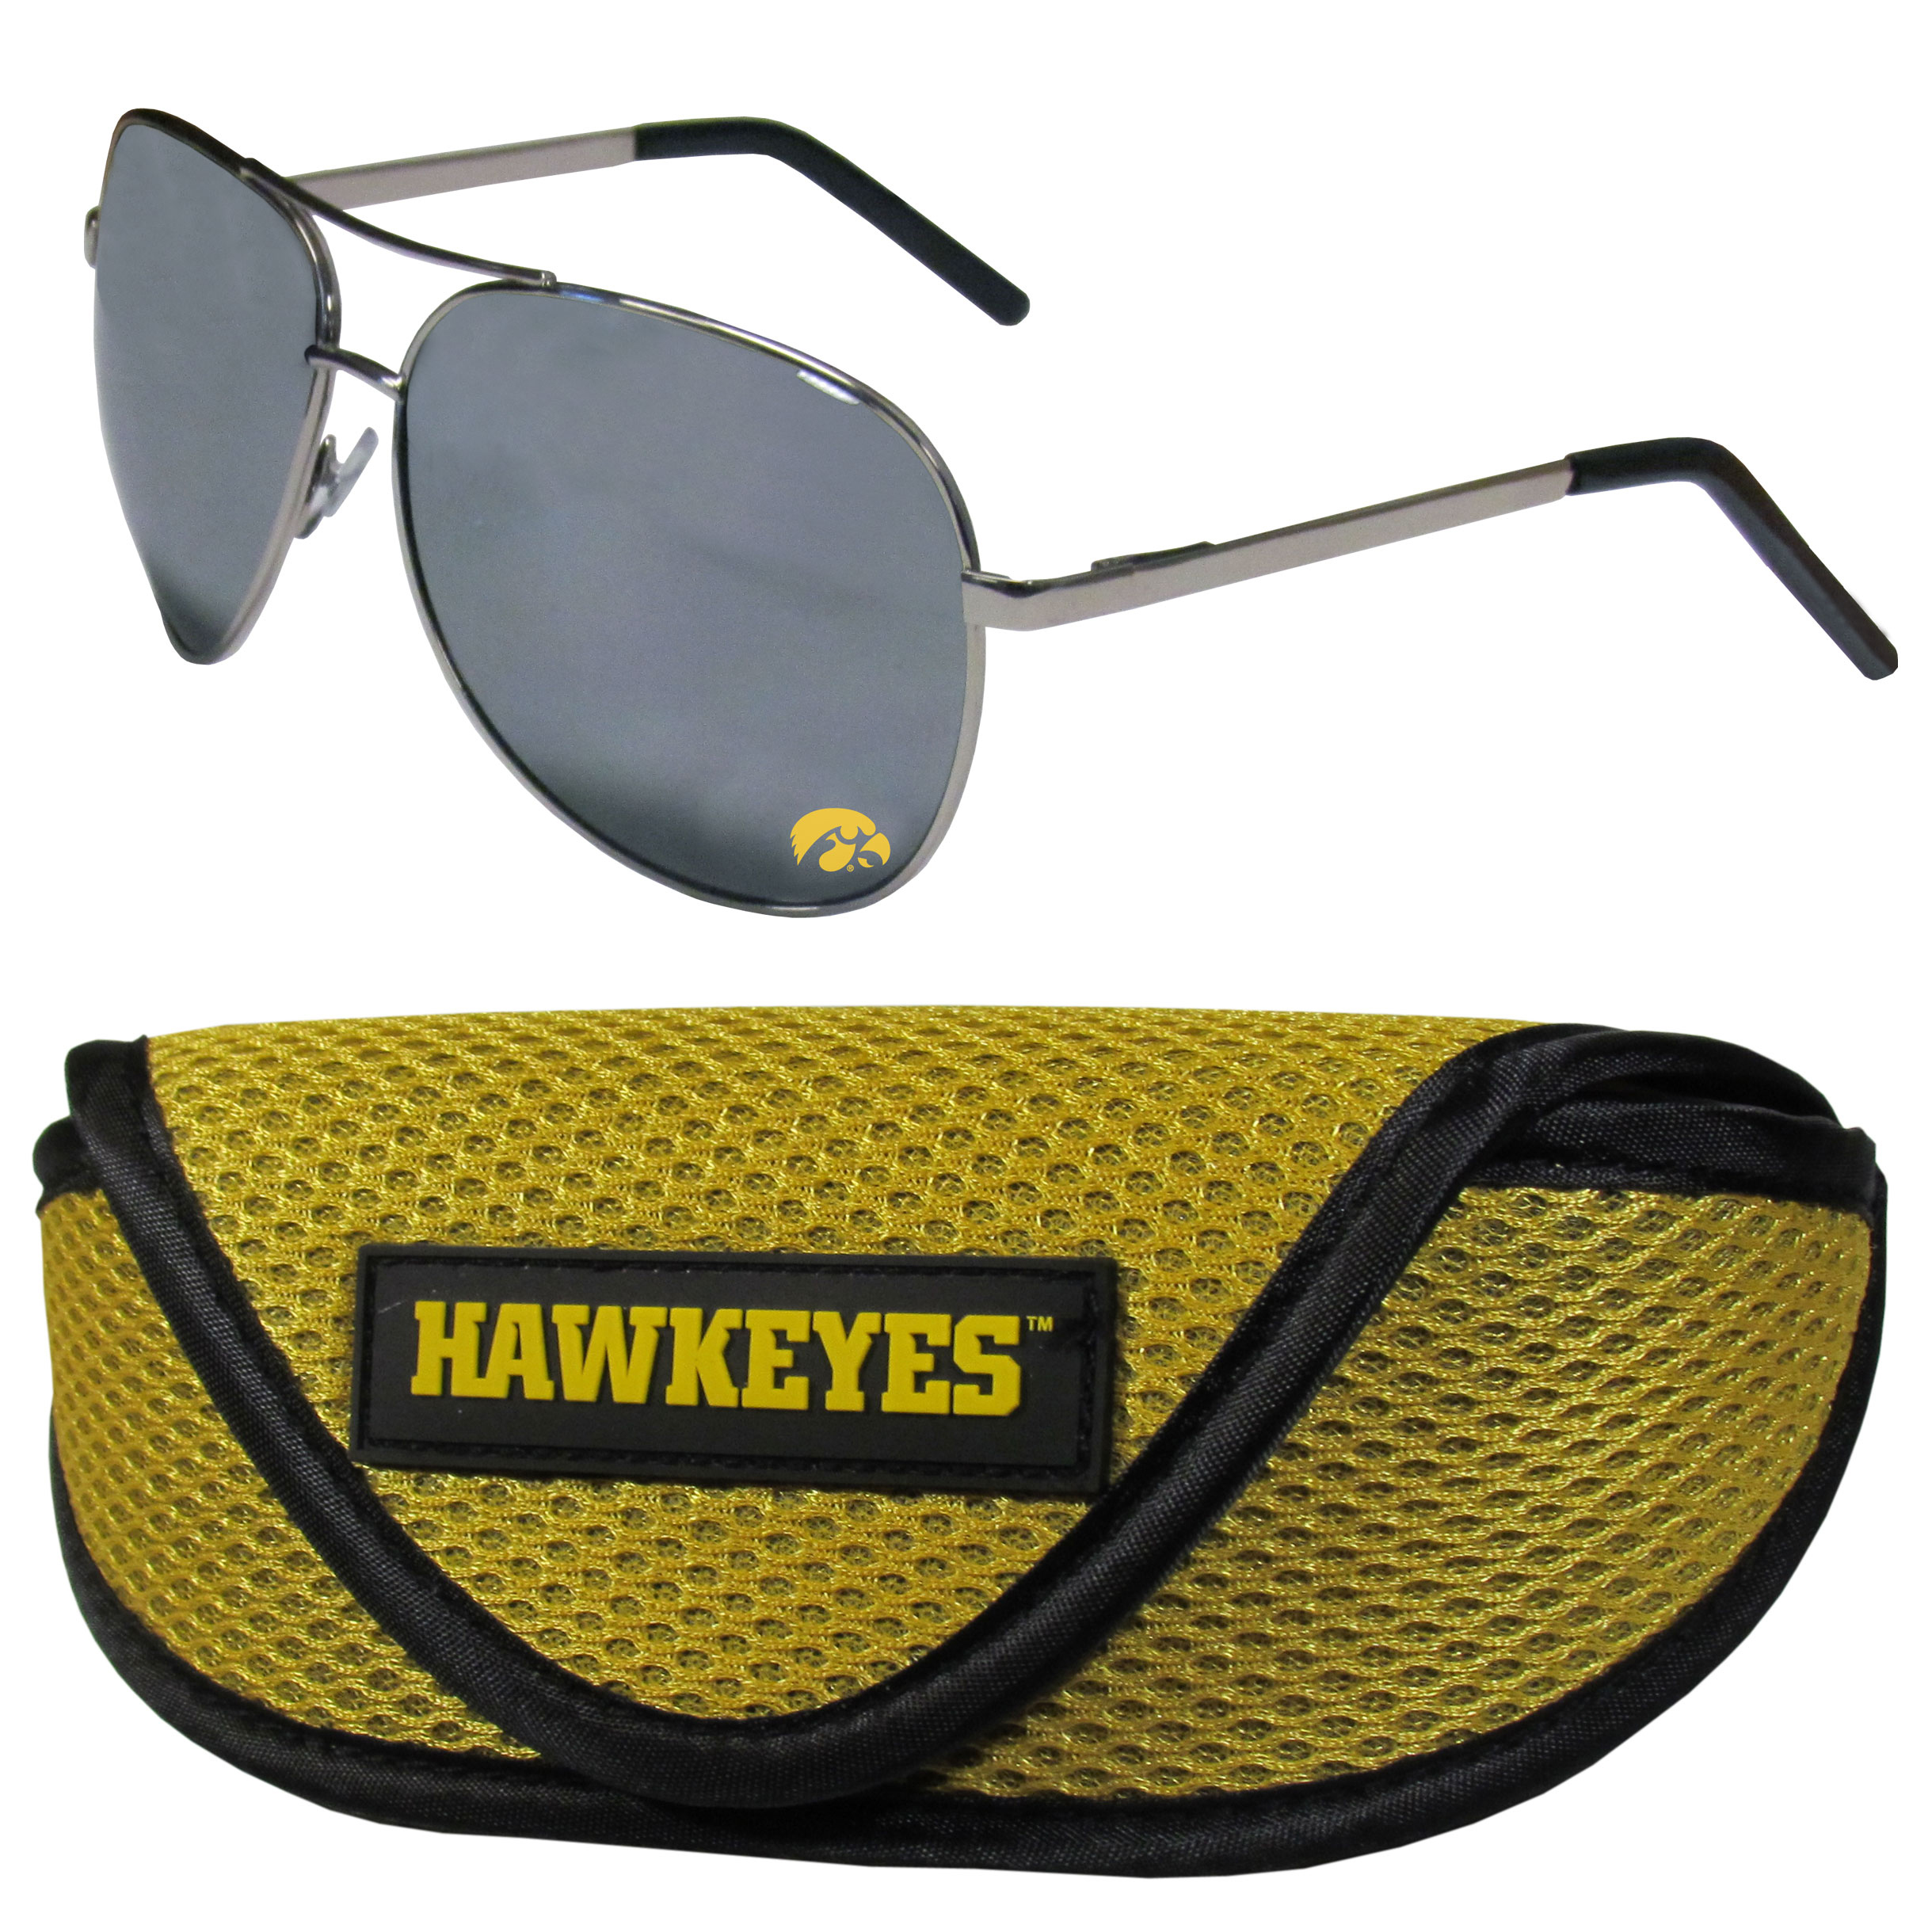 Iowa Hawkeyes Aviator Sunglasses and Sports Case - Aviator sunglasses are truly an iconic retro fashion statement that never goes out-of-style. Our Iowa Hawkeyes  aviator sunglasses pair this classic look with your love of the game. The iridium coated lenses reduce glare while driving, boating, golfing and their 100% UVA/UVB rating provides you with the maximum UV protection for all your outdoor activities. A millennial favorite, these affordable designer frames are the perfect eyewear accessory for a sports fan that is looking for high-quality at an affordable price. The durable, flex hinged frames are tough enough for hiking and camping or if you prefer sun bathing by the pool or on the beach these shades will really stand the test of time. The sunglasses come with a sporty case which has a large team logo on the lid that will make even the most die-hard fan proud!